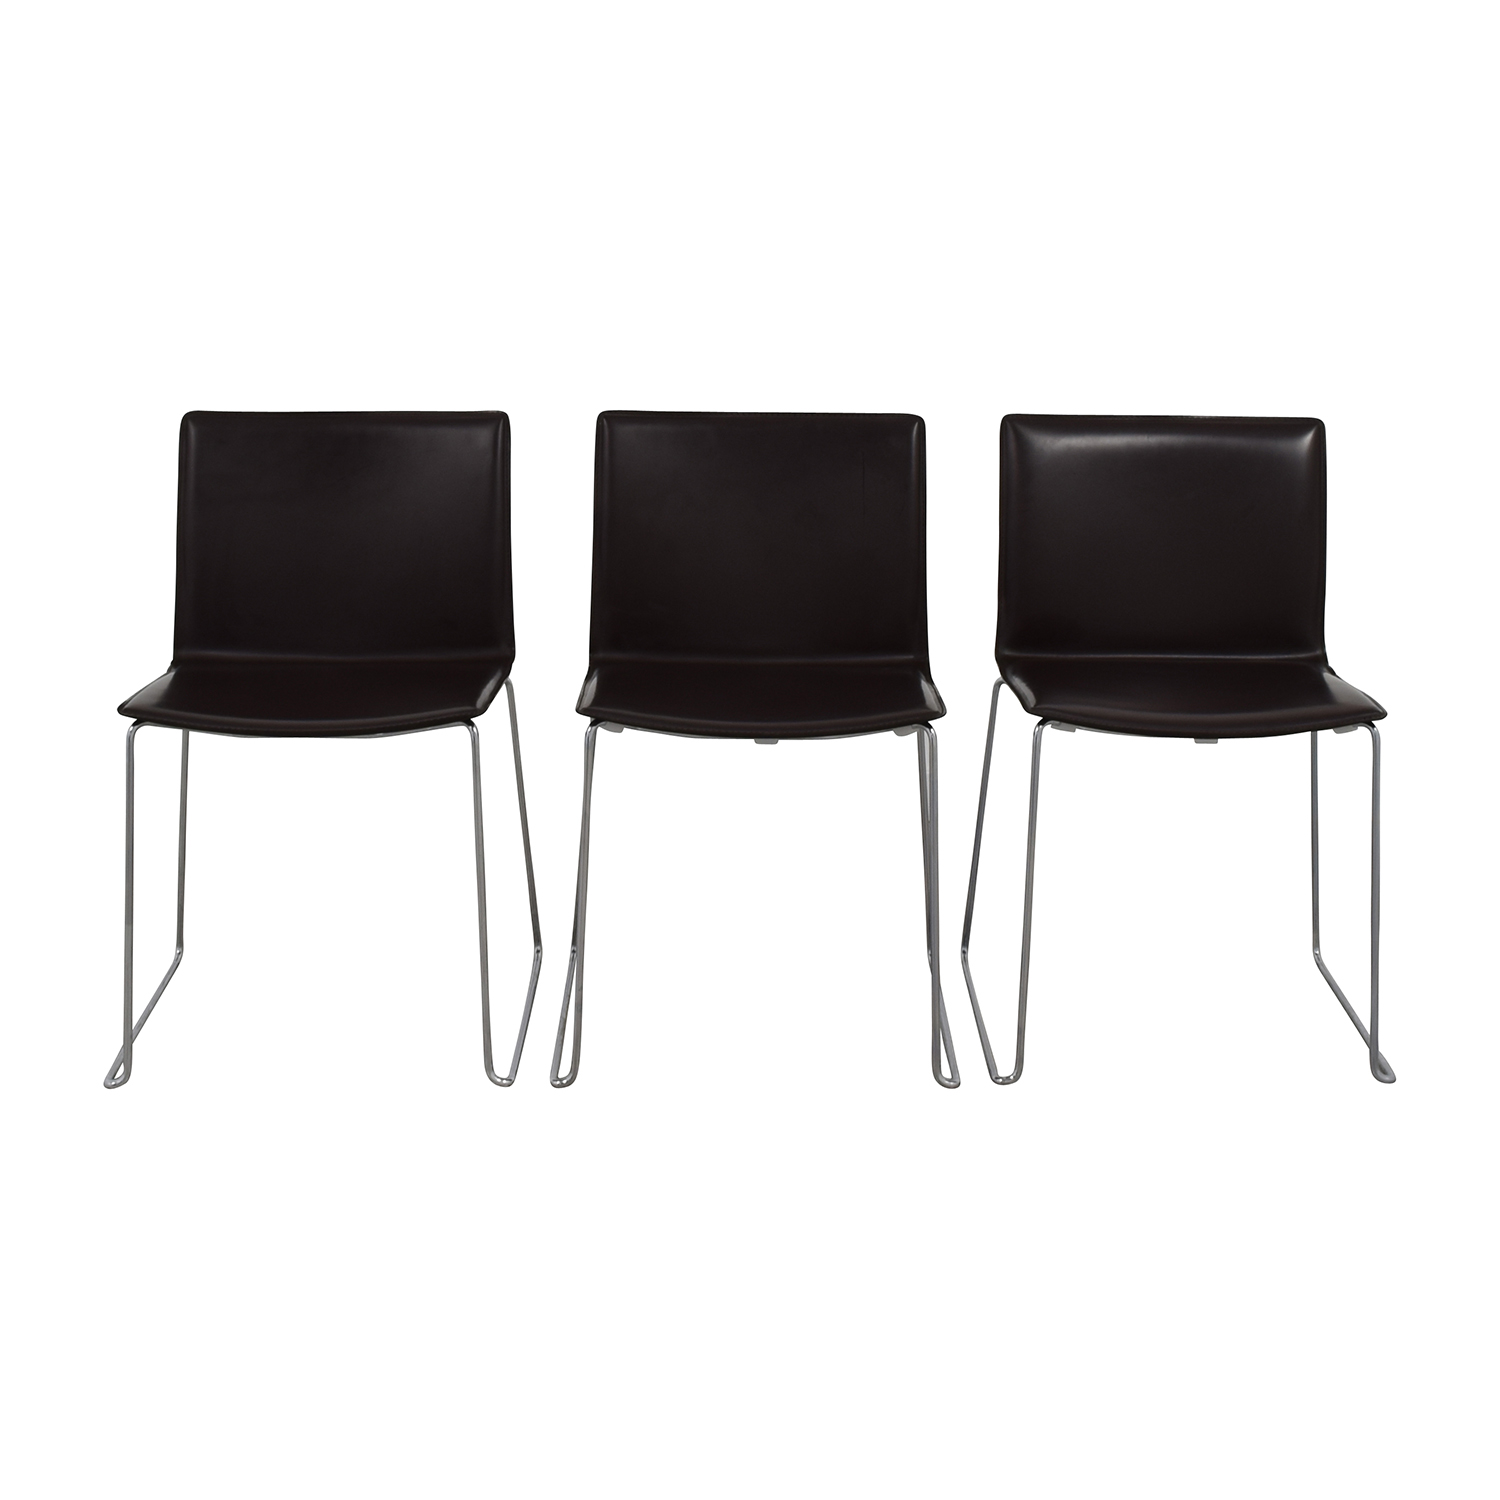 ABC Home & Carpet ABC Home & Carpet Leather Chrome Chairs, Set of Three on sale